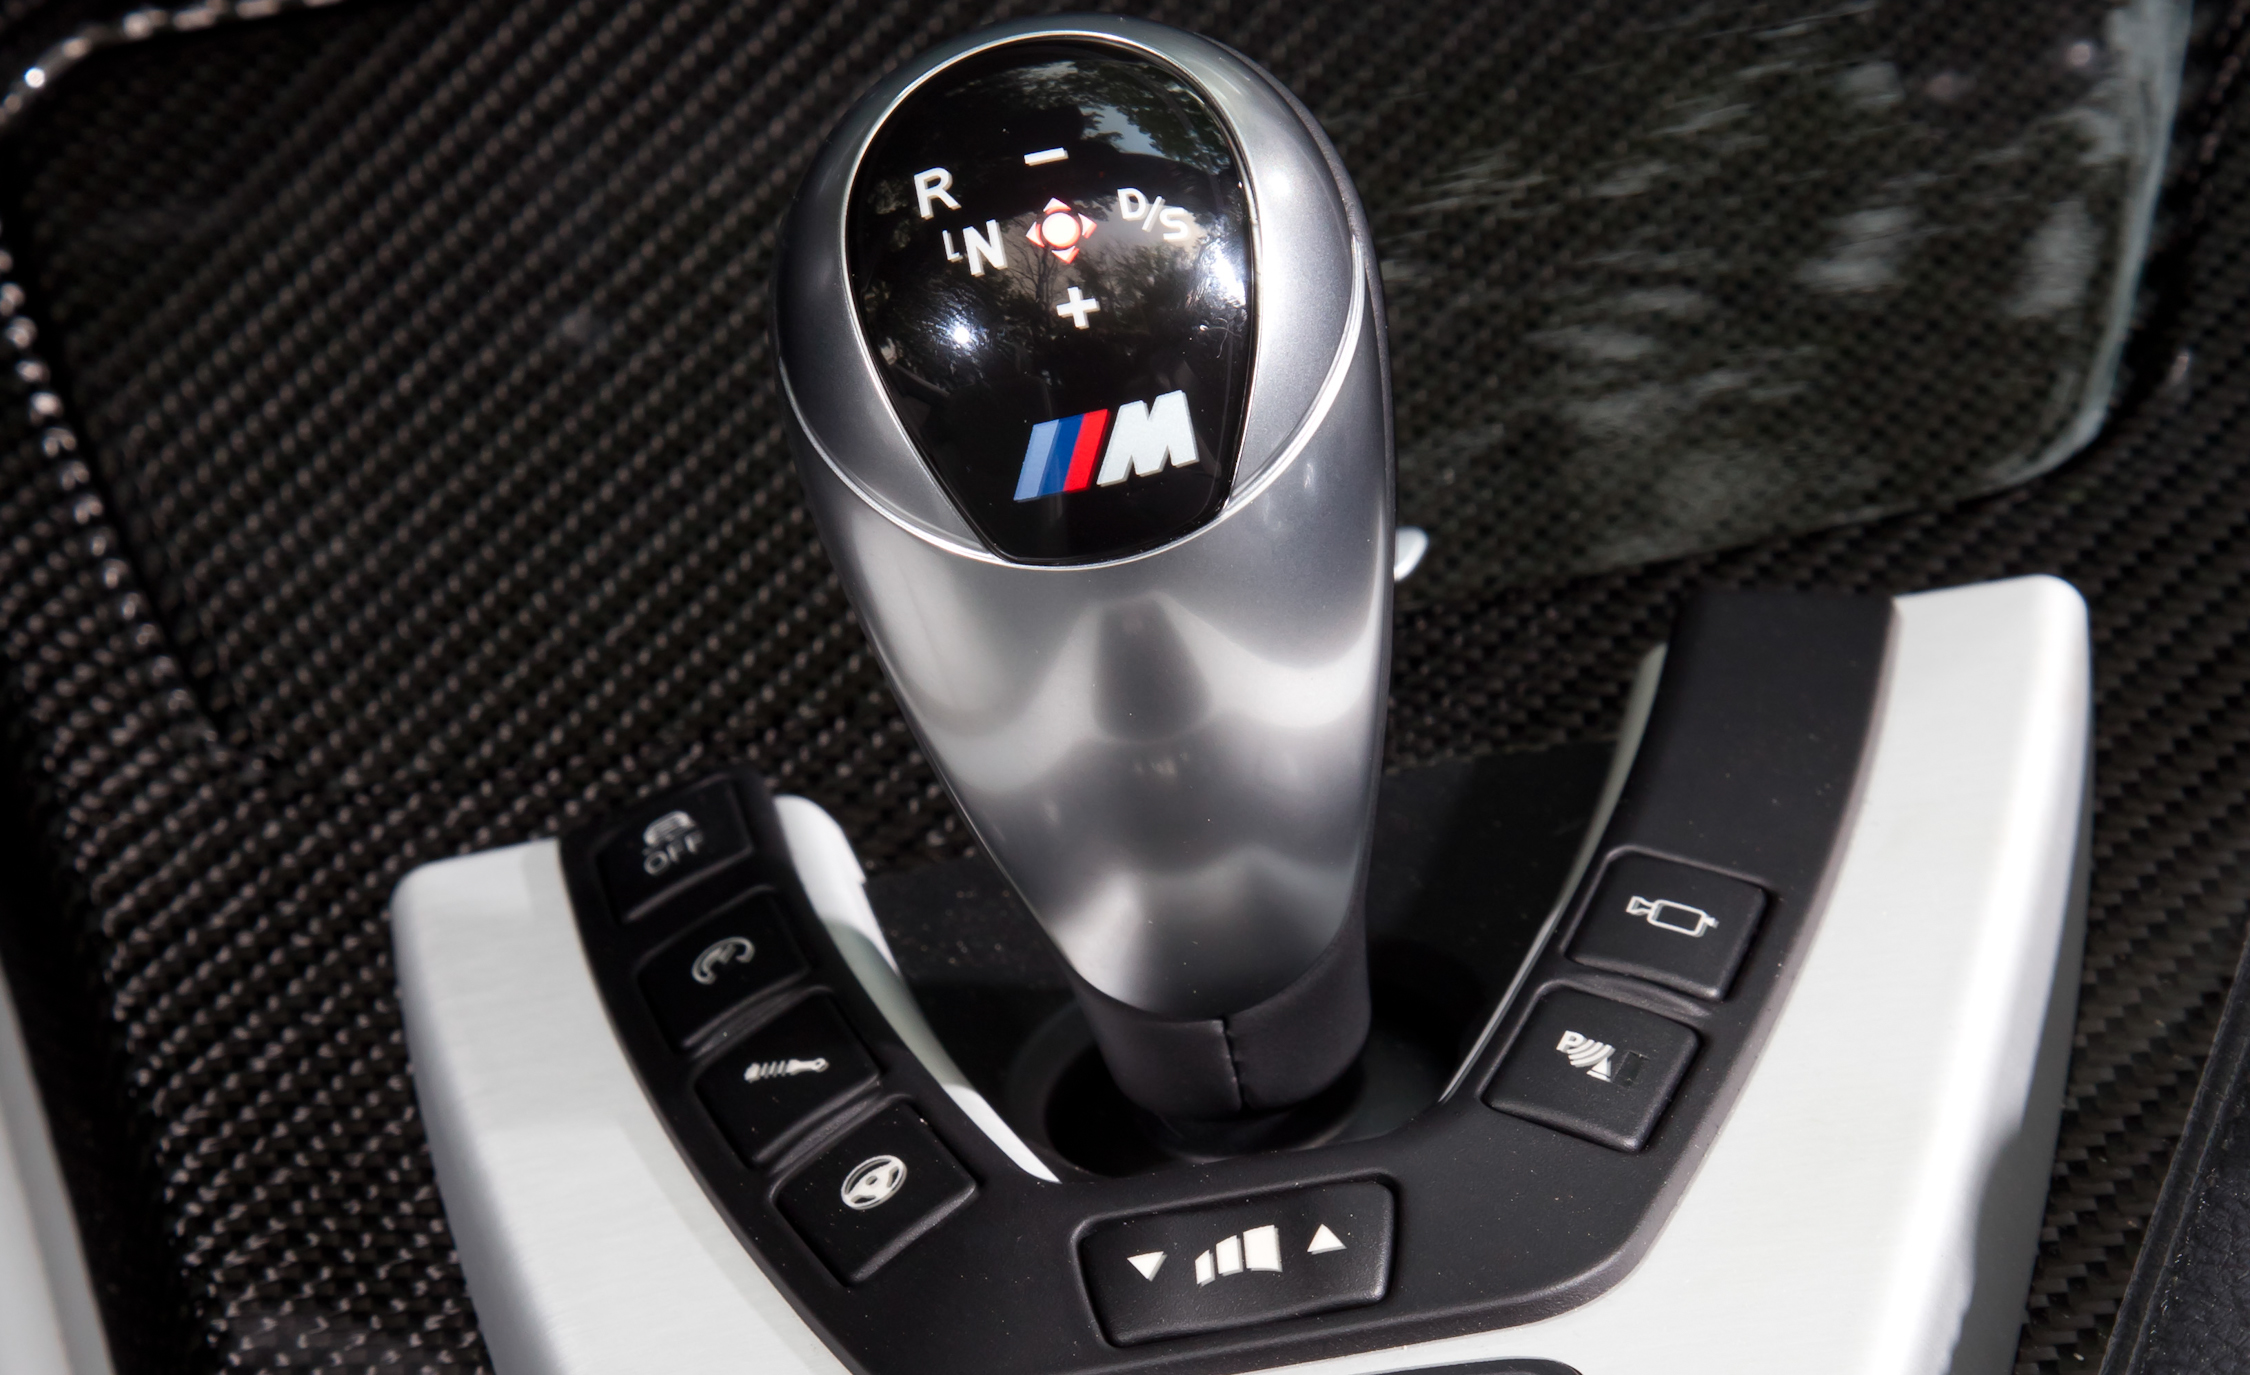 2012 BMW M6 Convertible Interior View Gear Shift Knob (Photo 14 of 30)